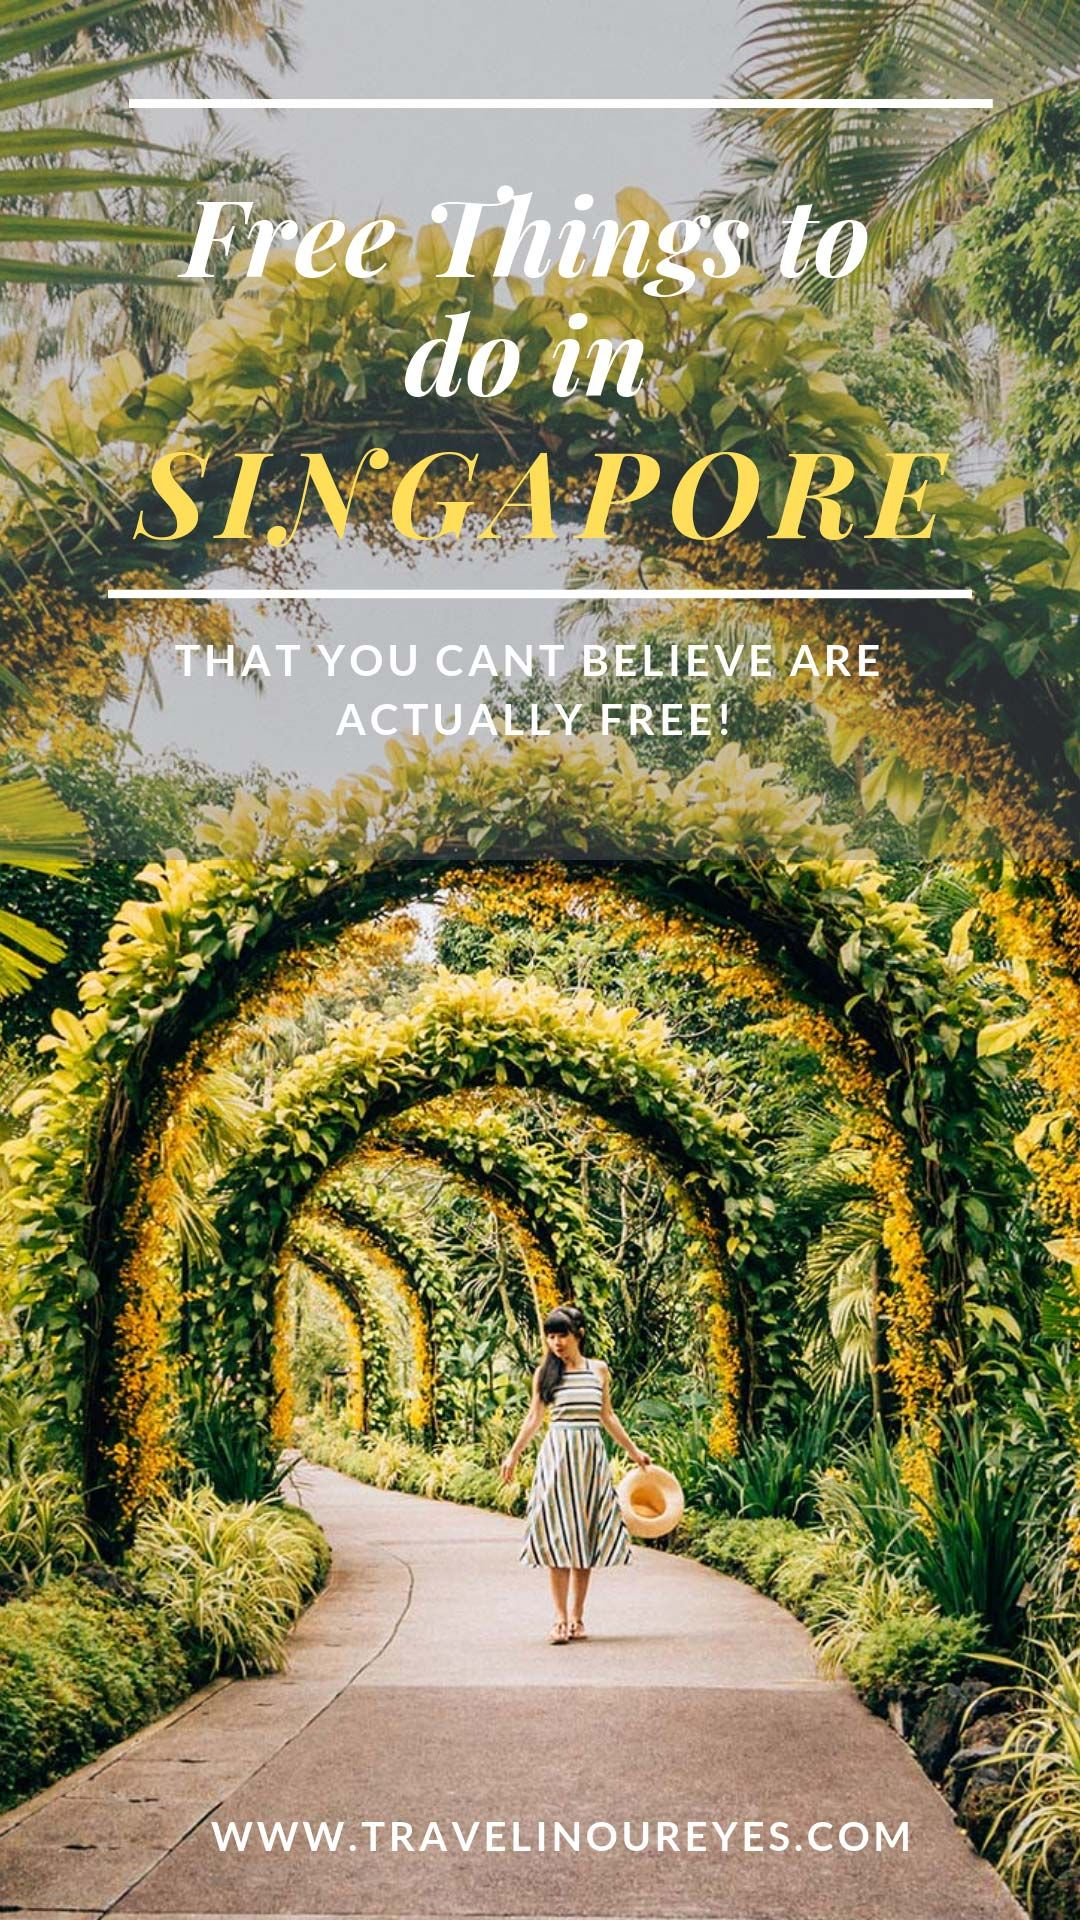 Free things to do in Singapore that you won't believe are actually free! Great for when you're visiting one of the most expensive cities in Southeast Asia. www.travelinoureyes.com #singapore #singaporetravel #travelguide